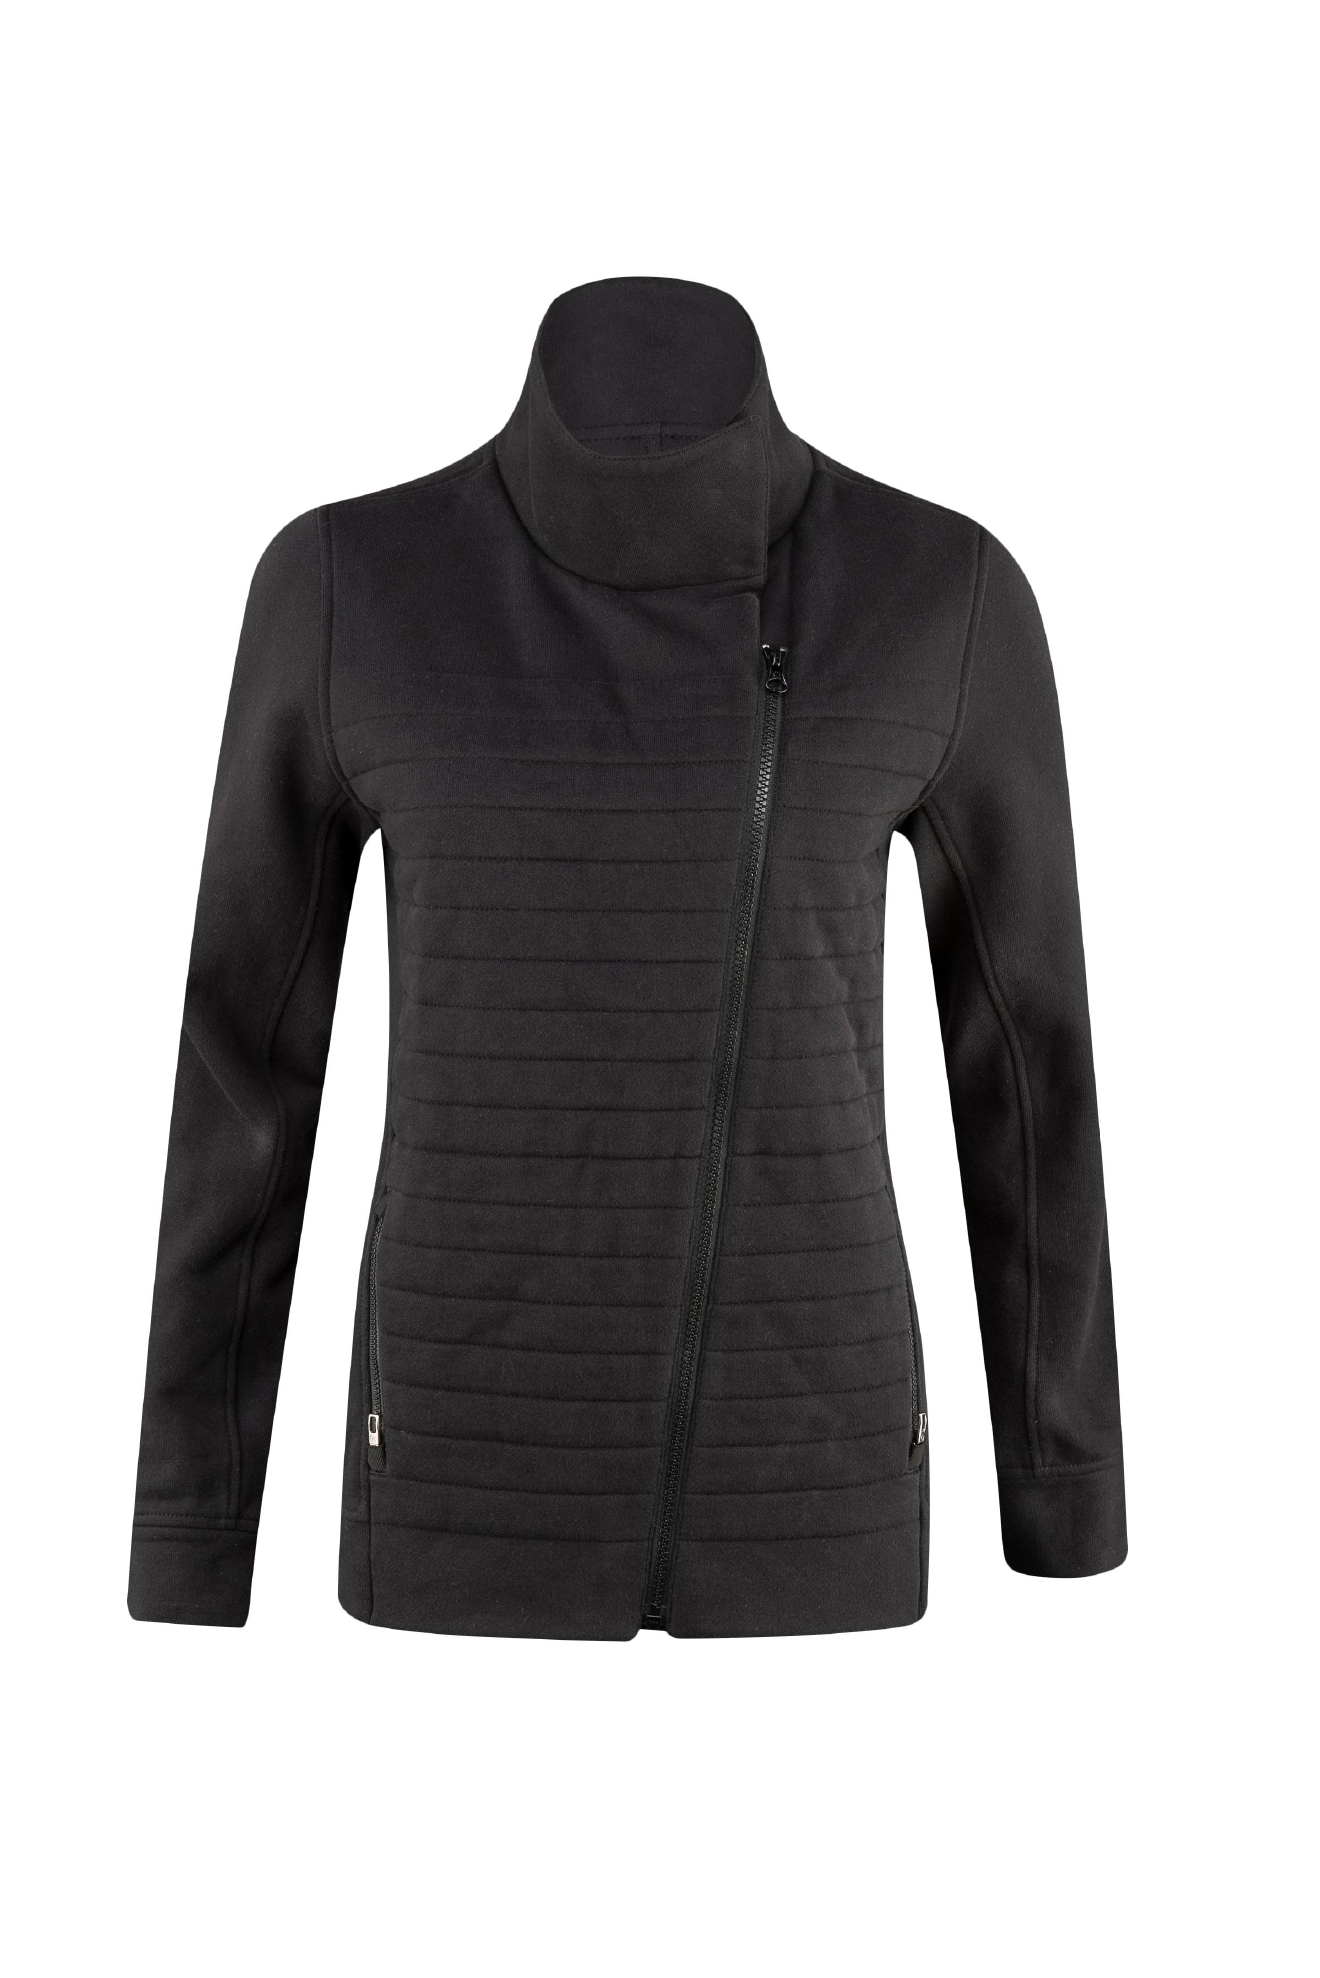 Fleece Be True Jacket. Available at Lululemon stores and lululemon.com. (Photo: Lululemon)